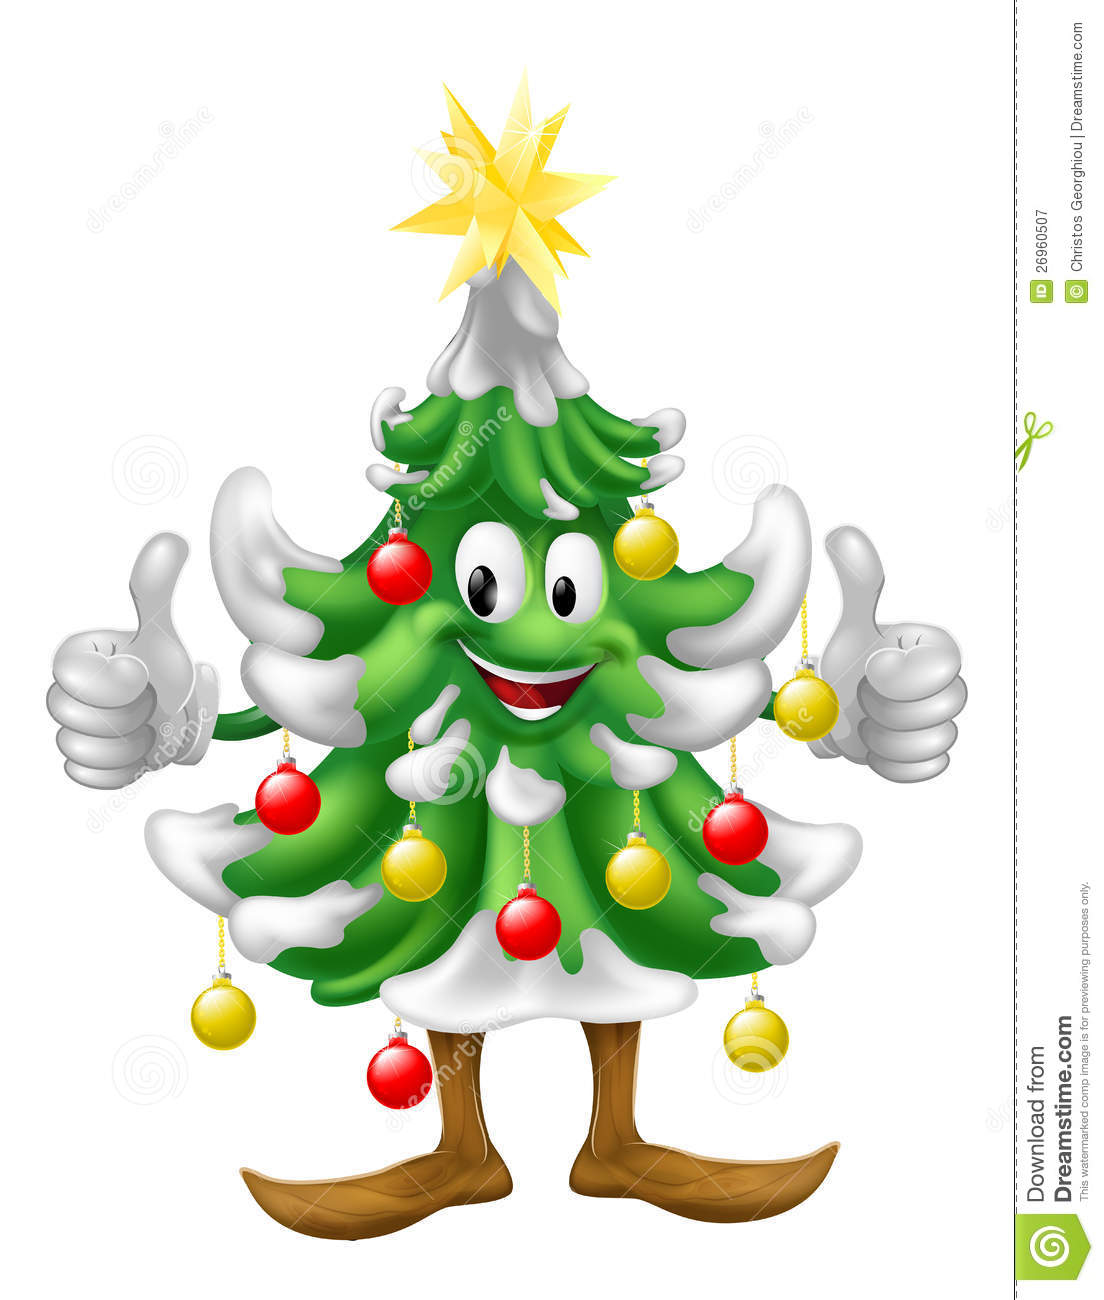 Christmas tree mascot doing thumbs up royalty free stock photography